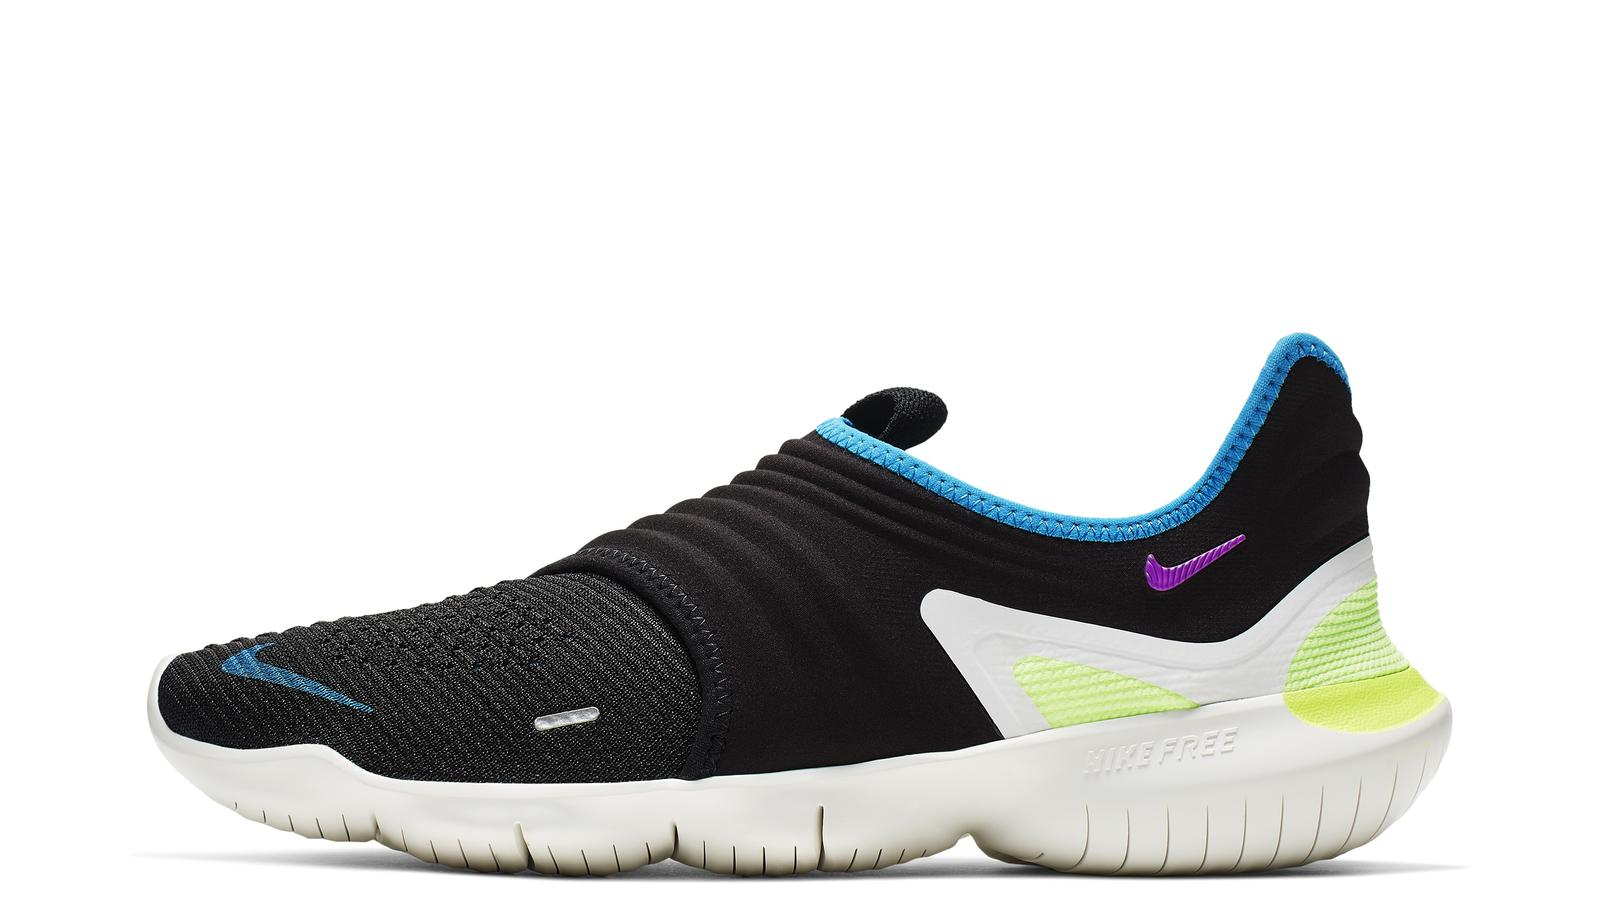 2019 Nike Free Running Collection Nike News